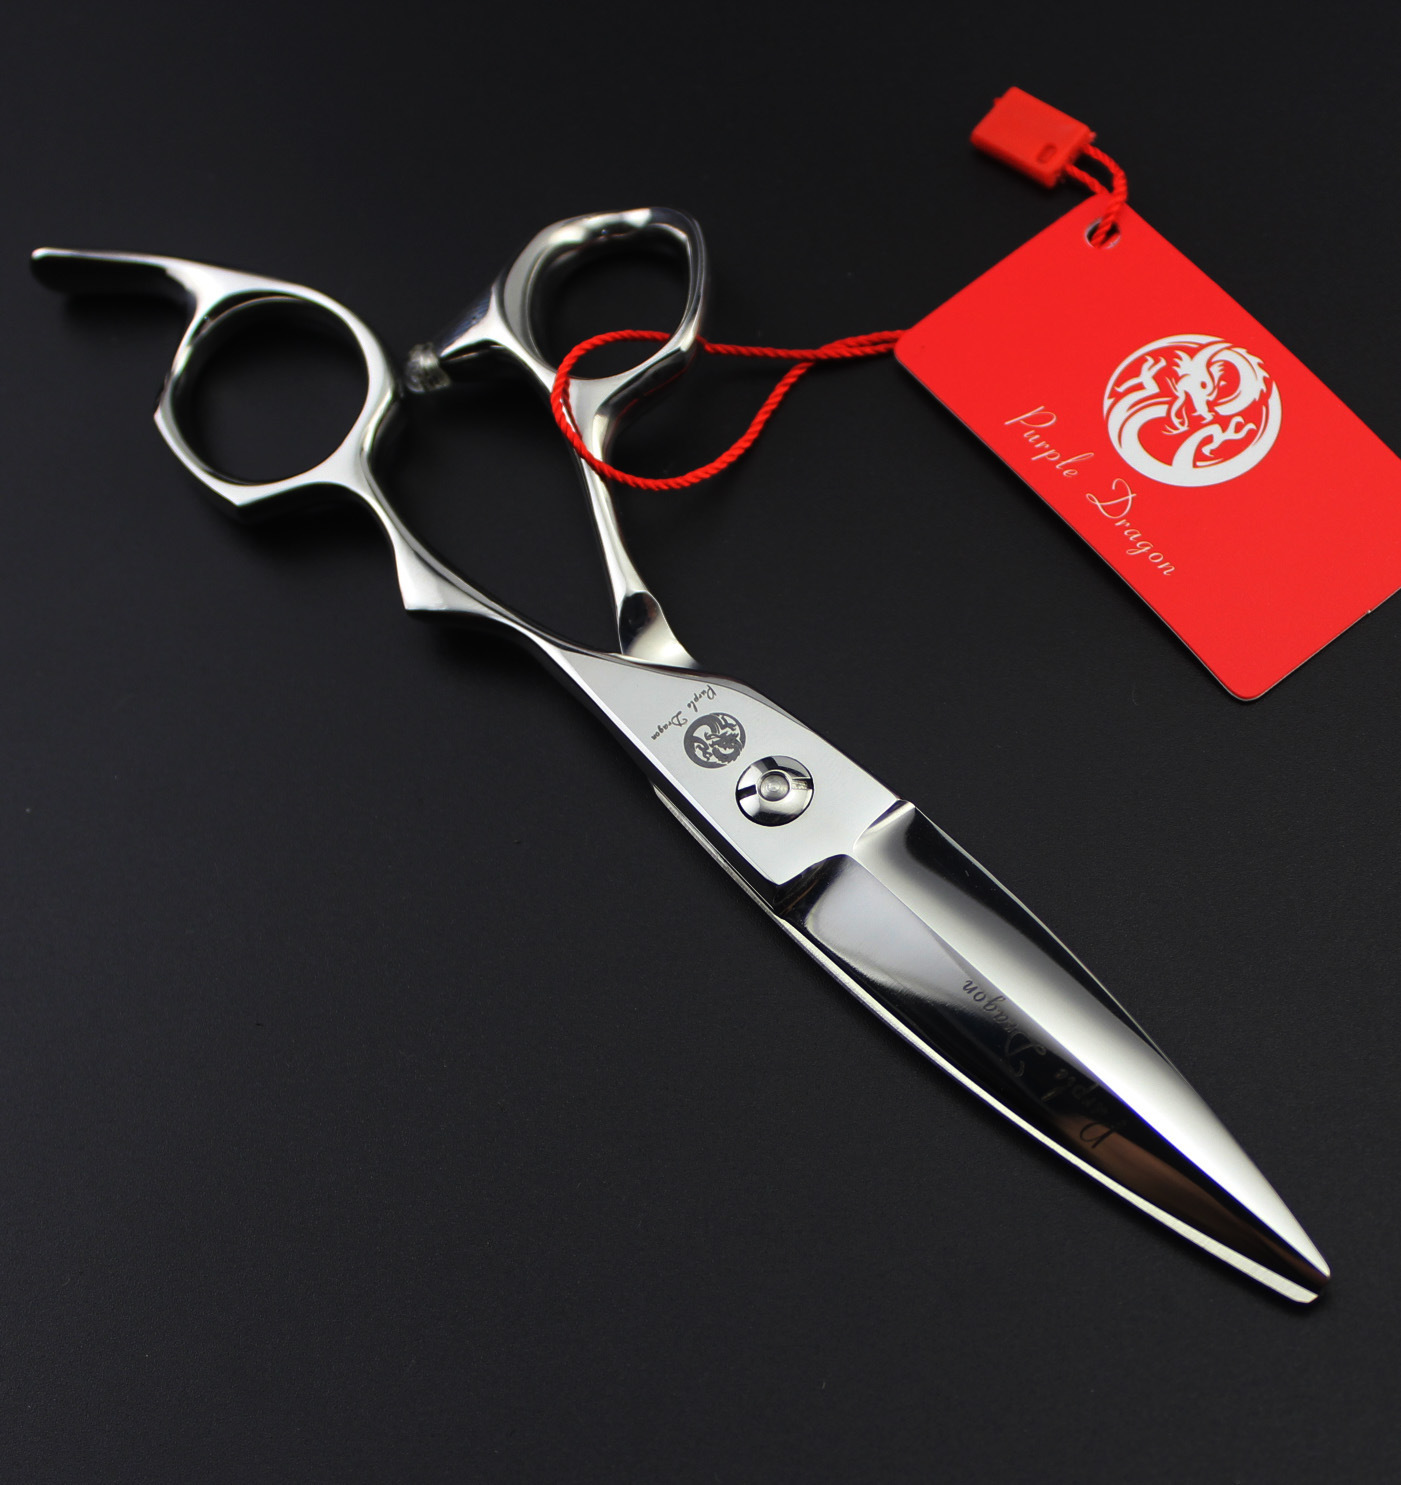 Professional 6.0 inch hair cutting modified large sliding lancet scissorsProfessional 6.0 inch hair cutting modified large sliding lancet scissors